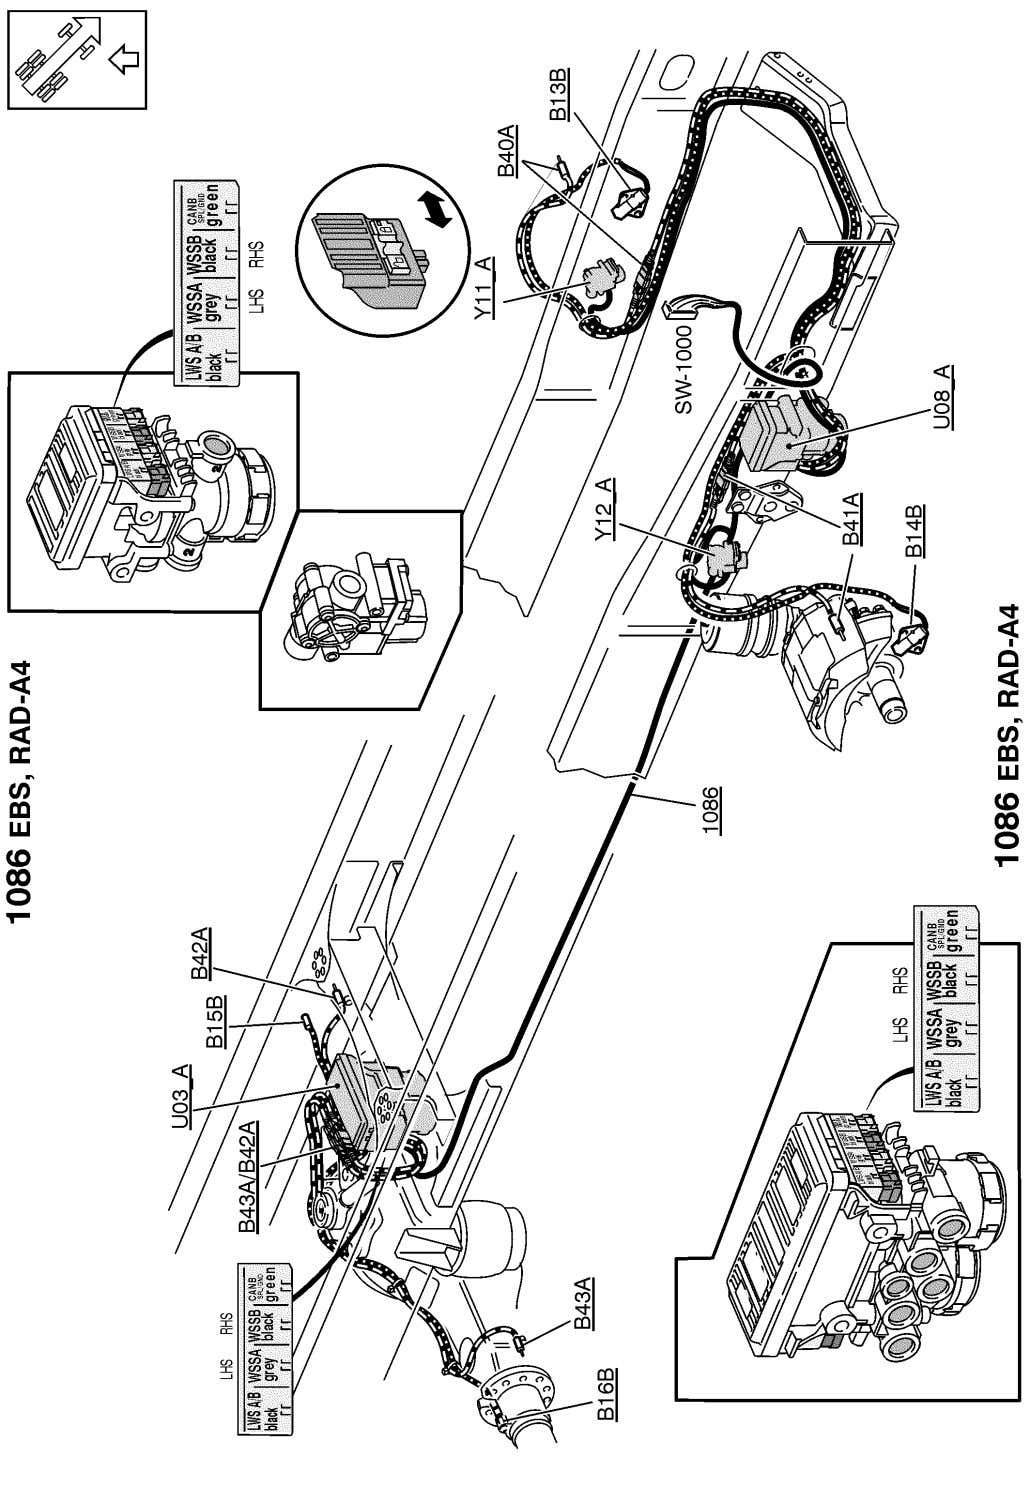 T3059945 Wiring diagram Page 187 (298)